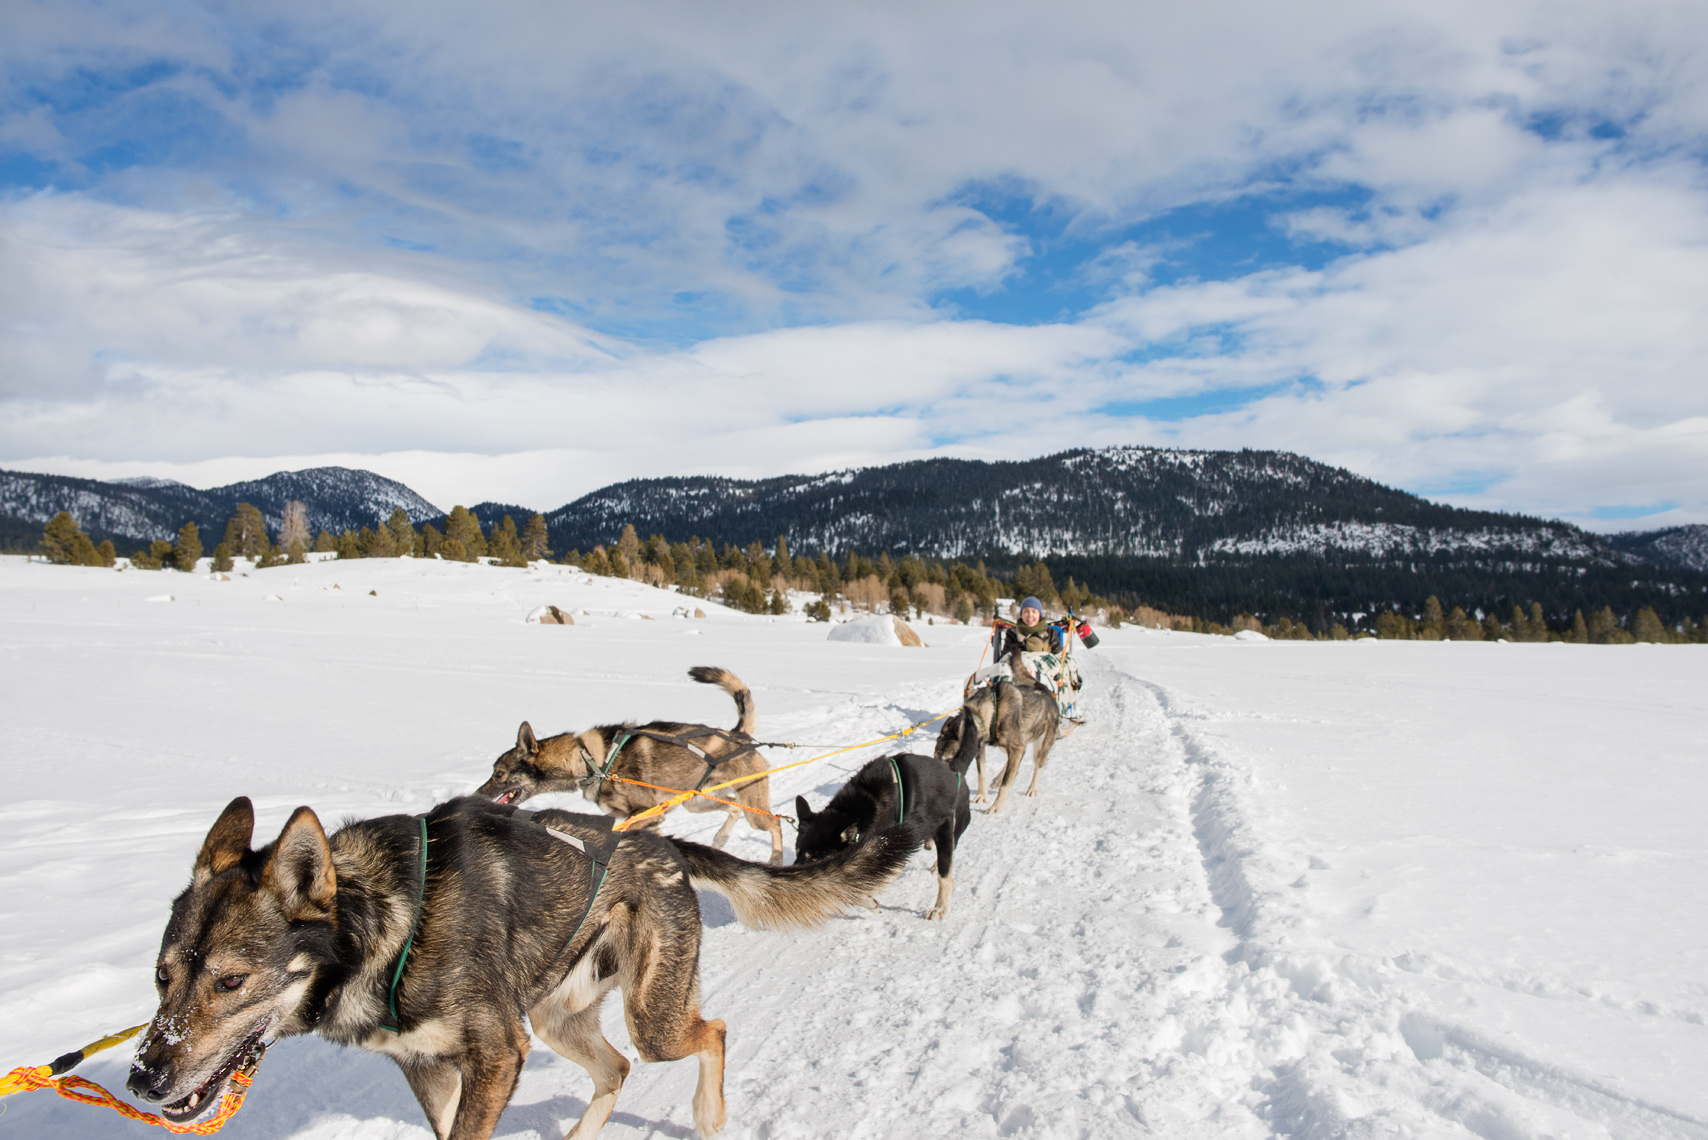 Dog sledding with Alaskan huskies